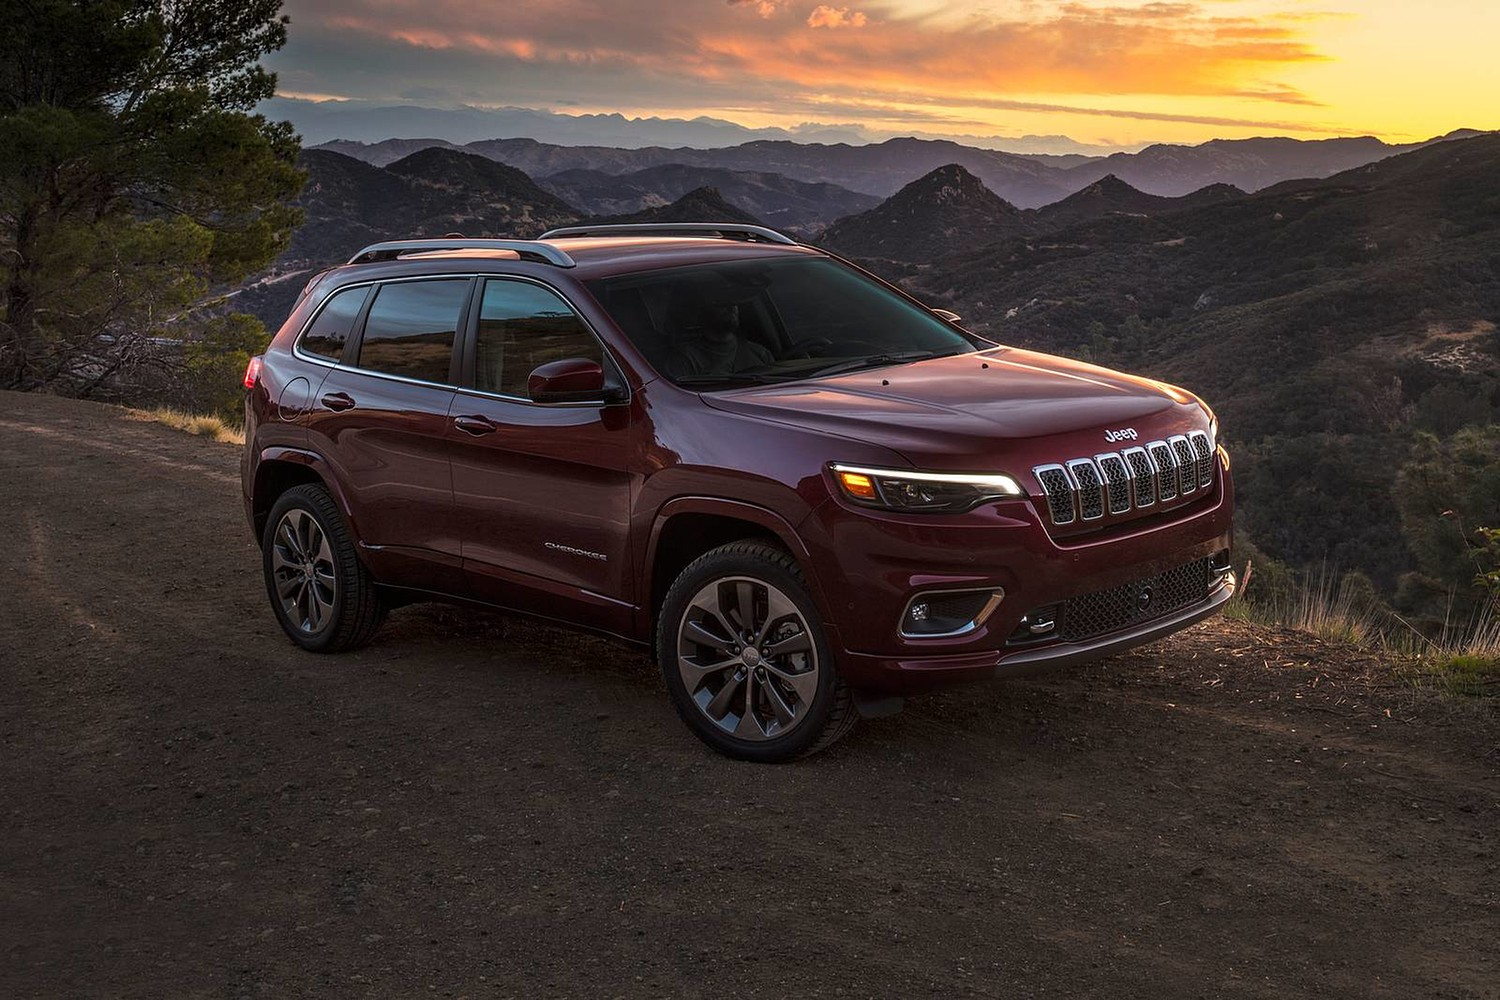 2019 Jeep Cherokee Overland 4dr SUV Exterior